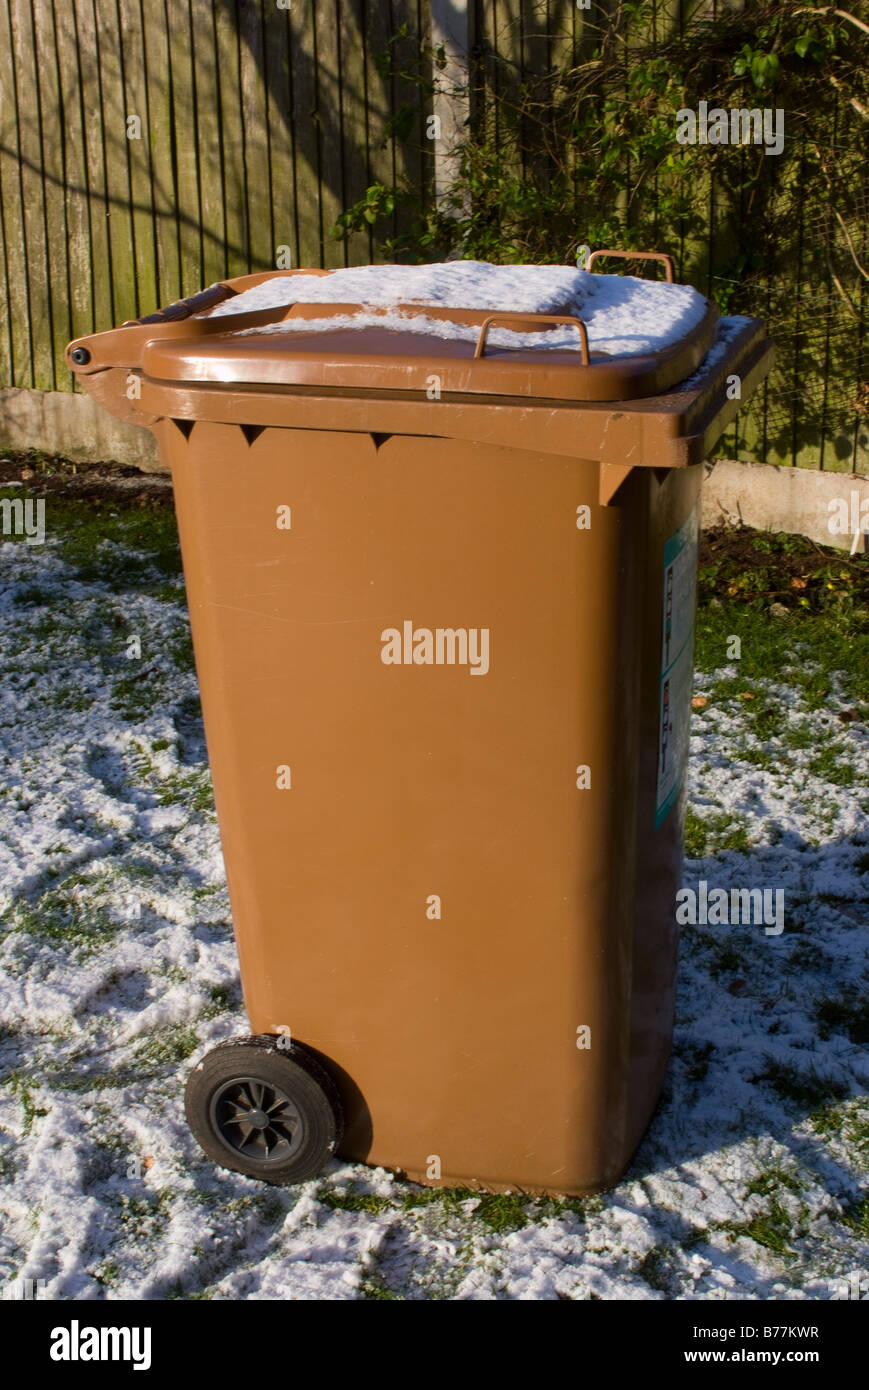 Garbage Bin With Wheels Stock Photos Amp Garbage Bin With